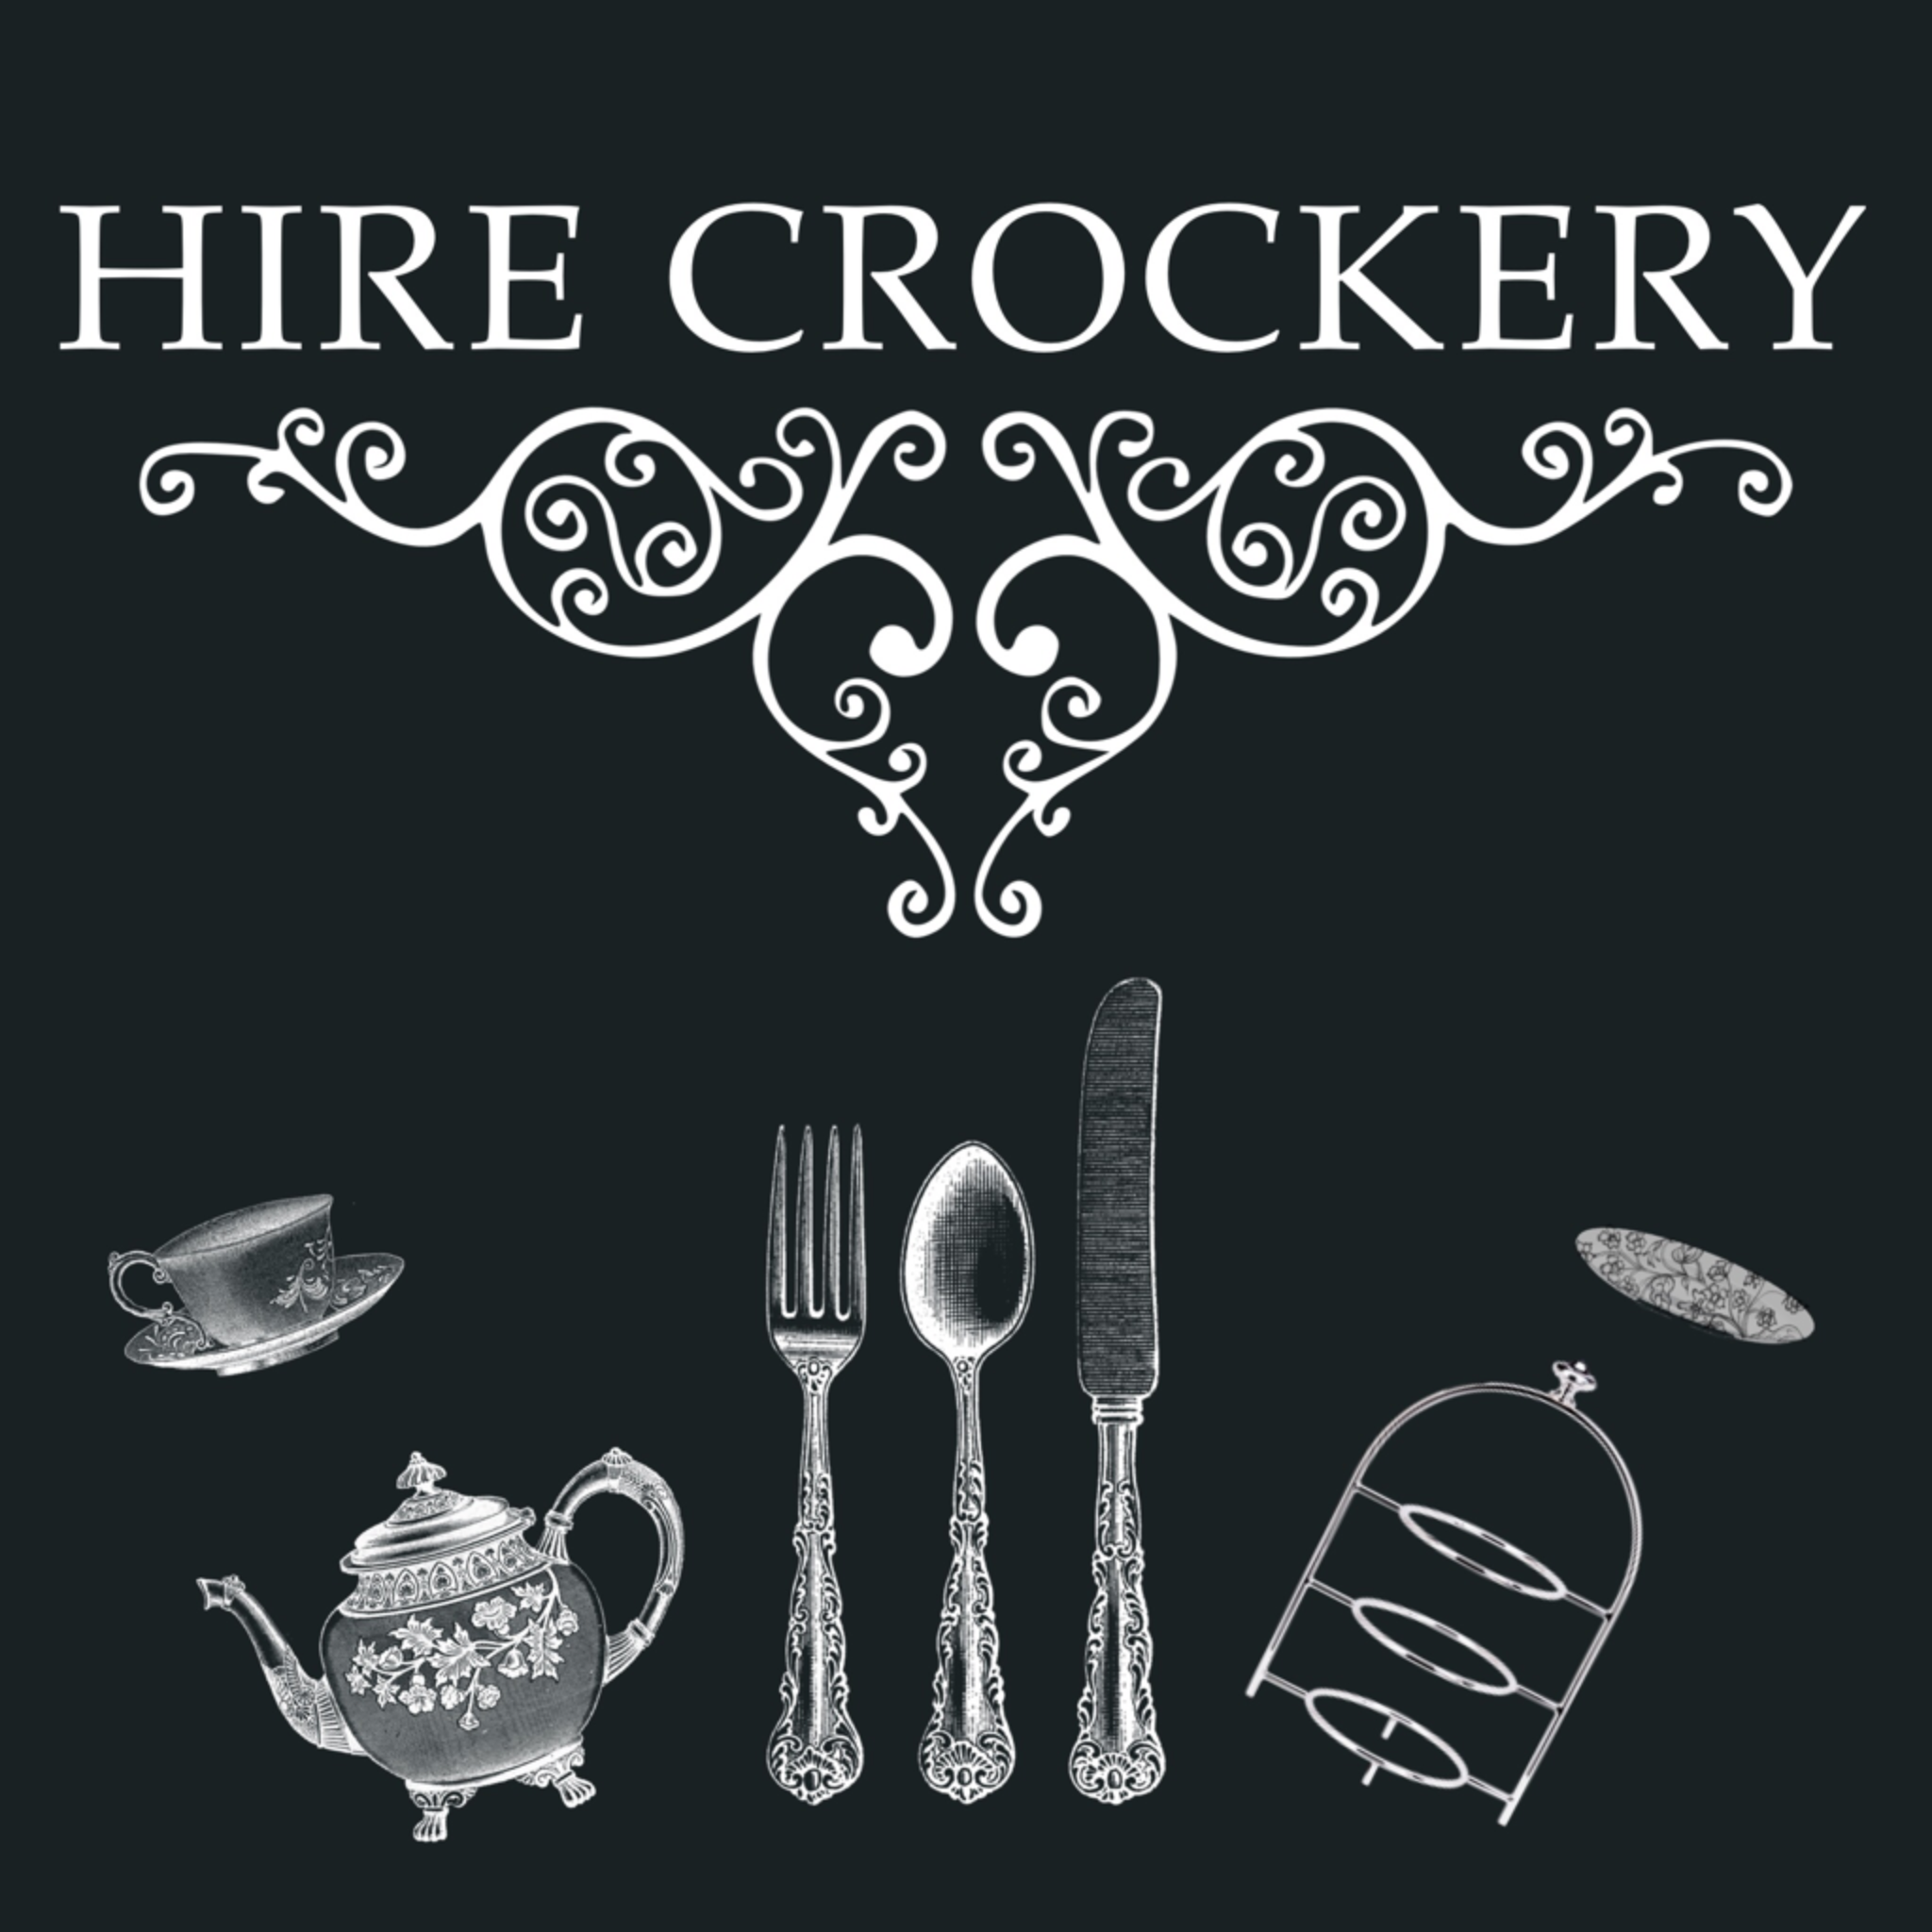 Crockery Hire